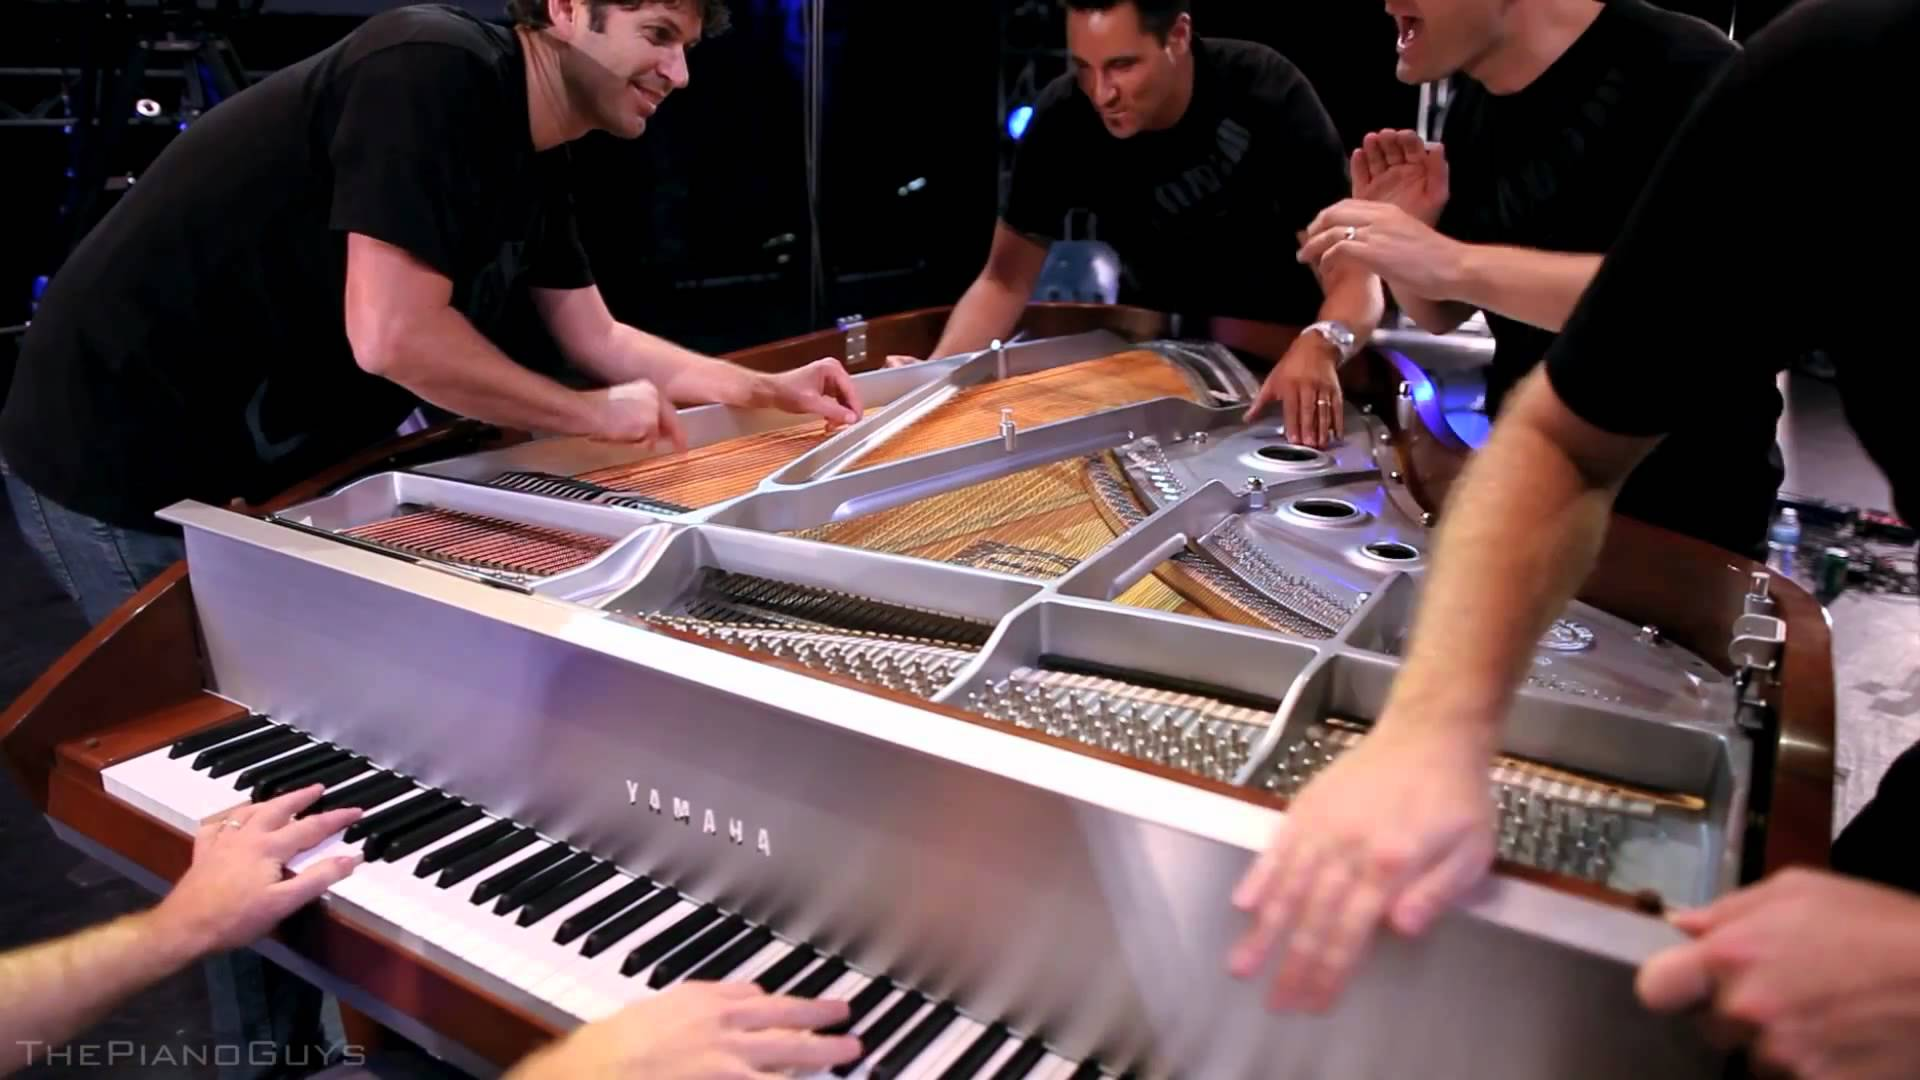 Trump signs Piano Guys for inauguration